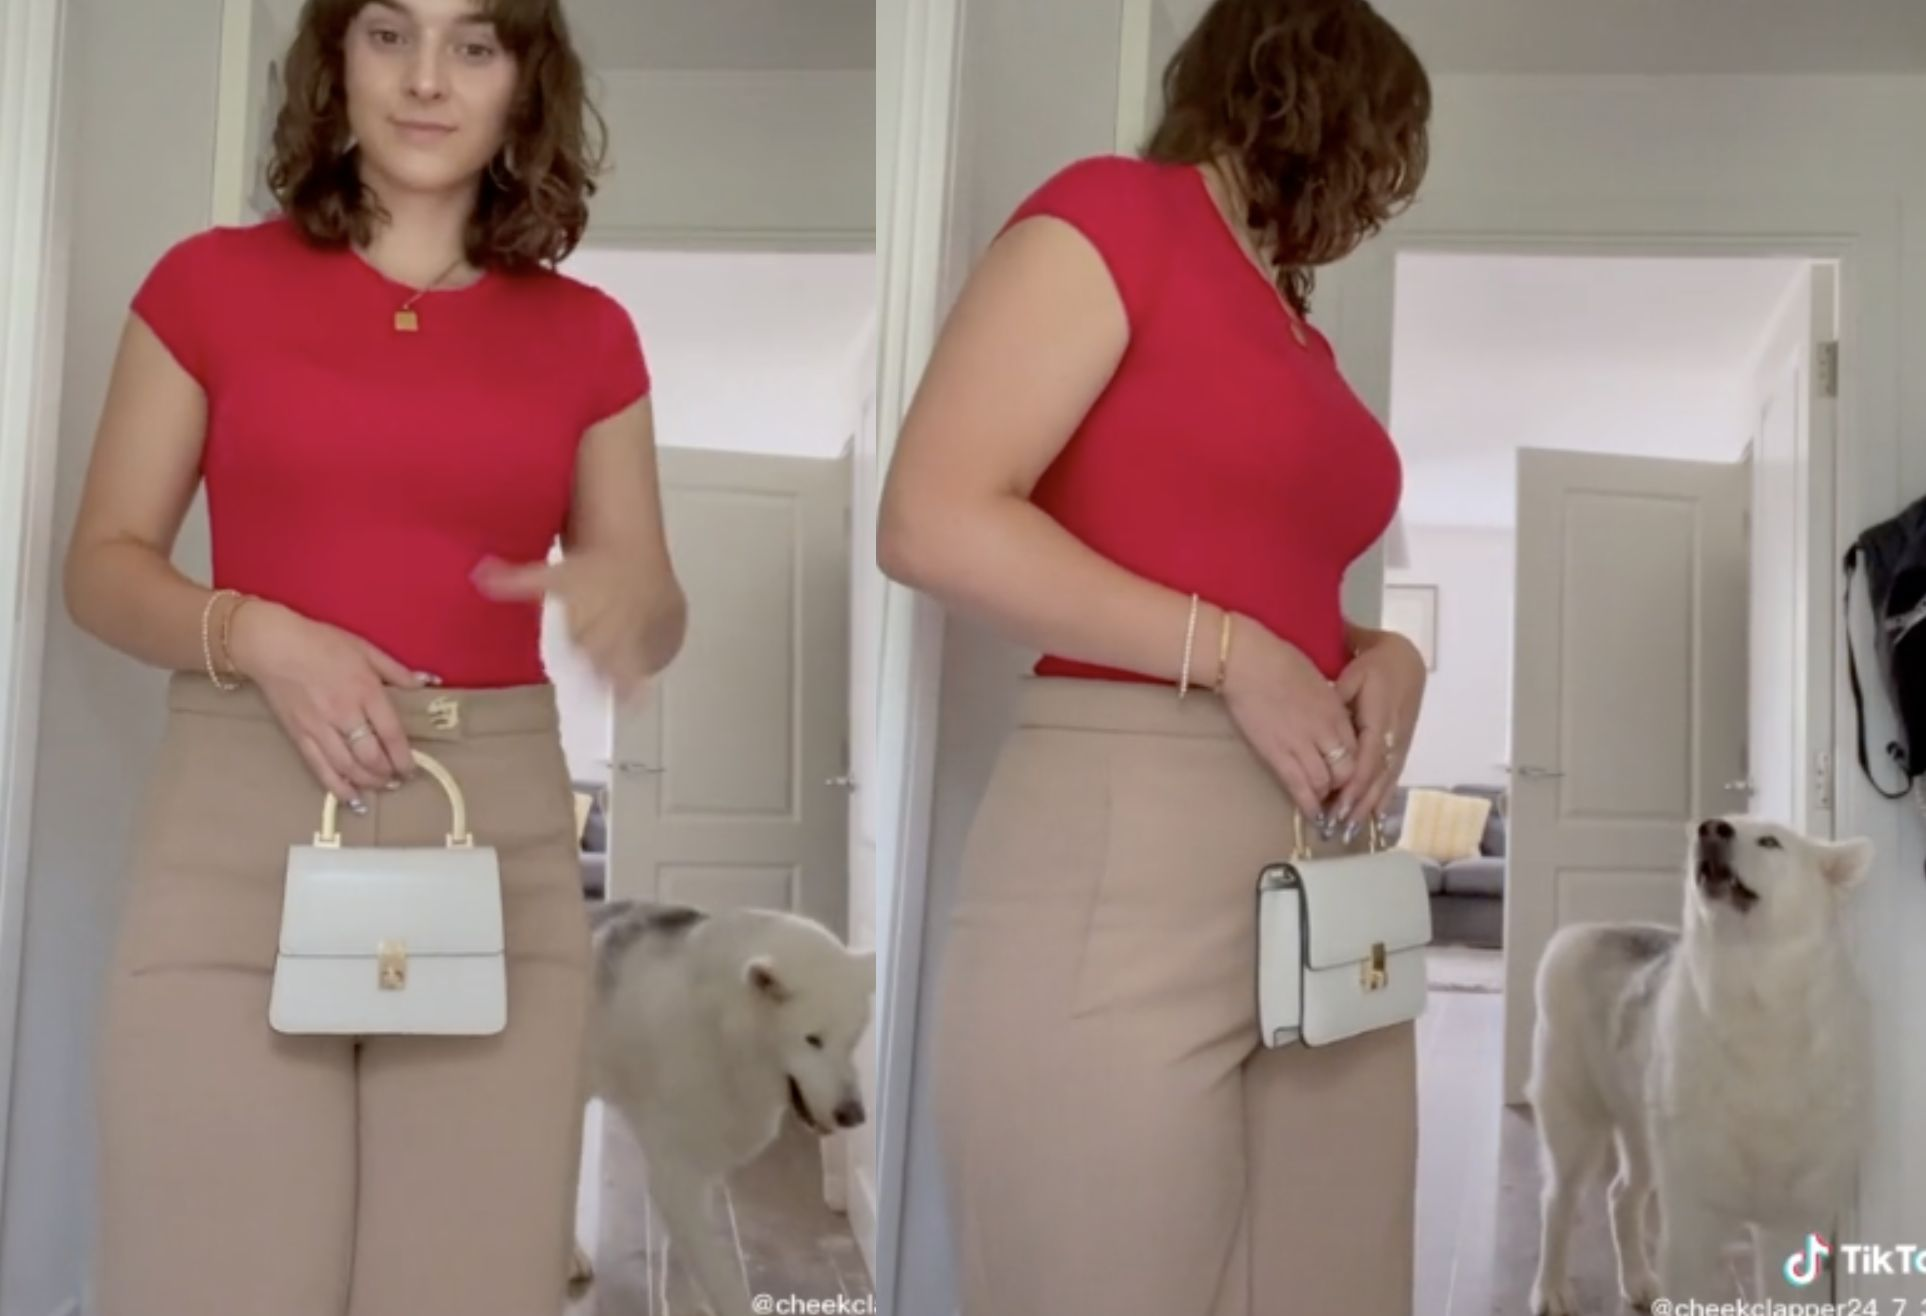 Woman is stunned after dog seemingly asks her a question